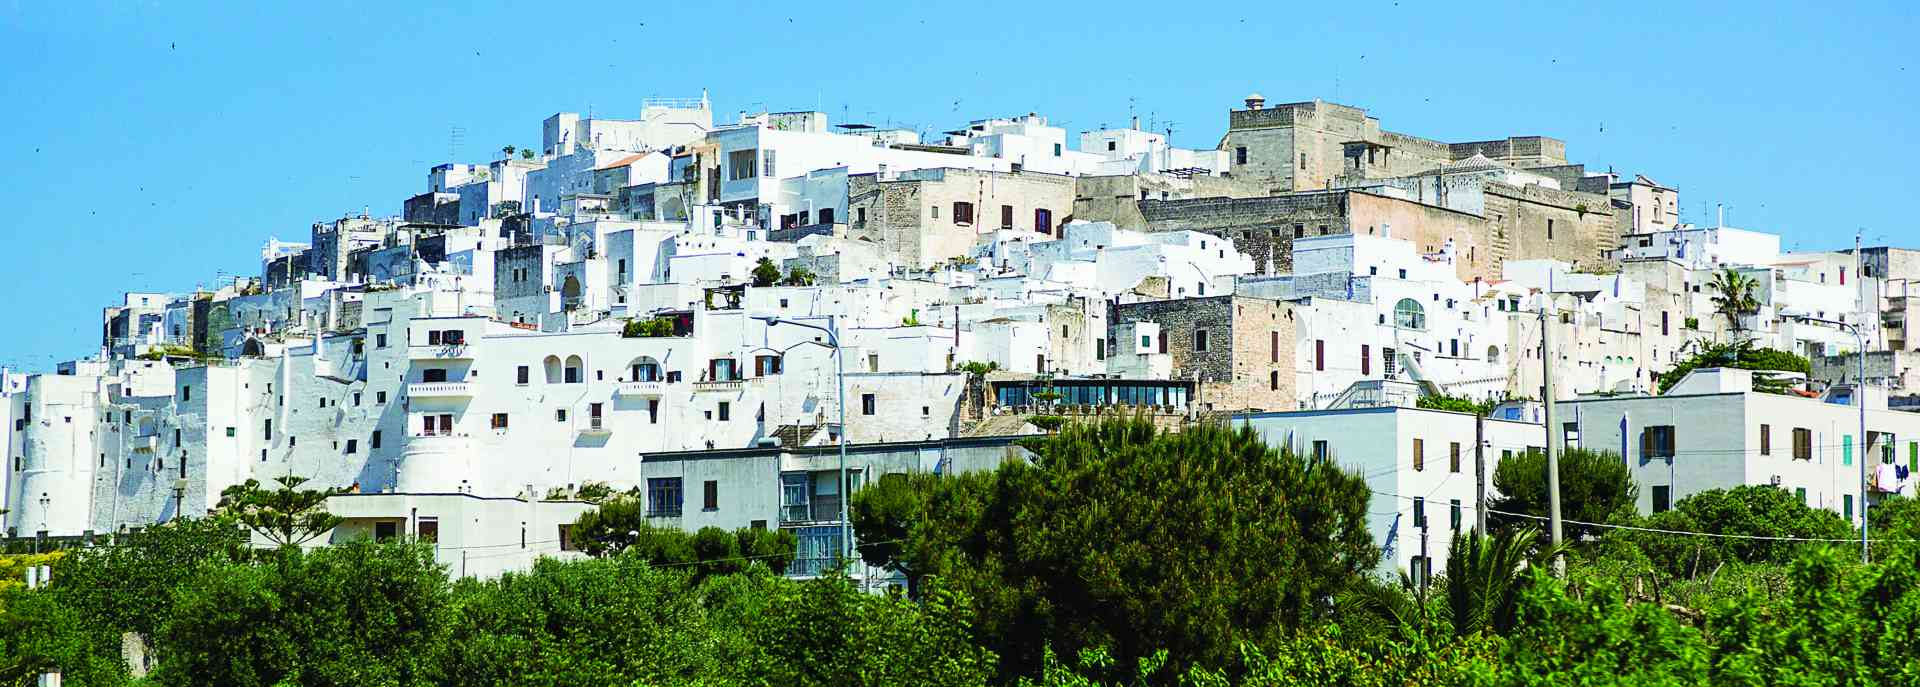 Ostuni, Italy by Graham Meale